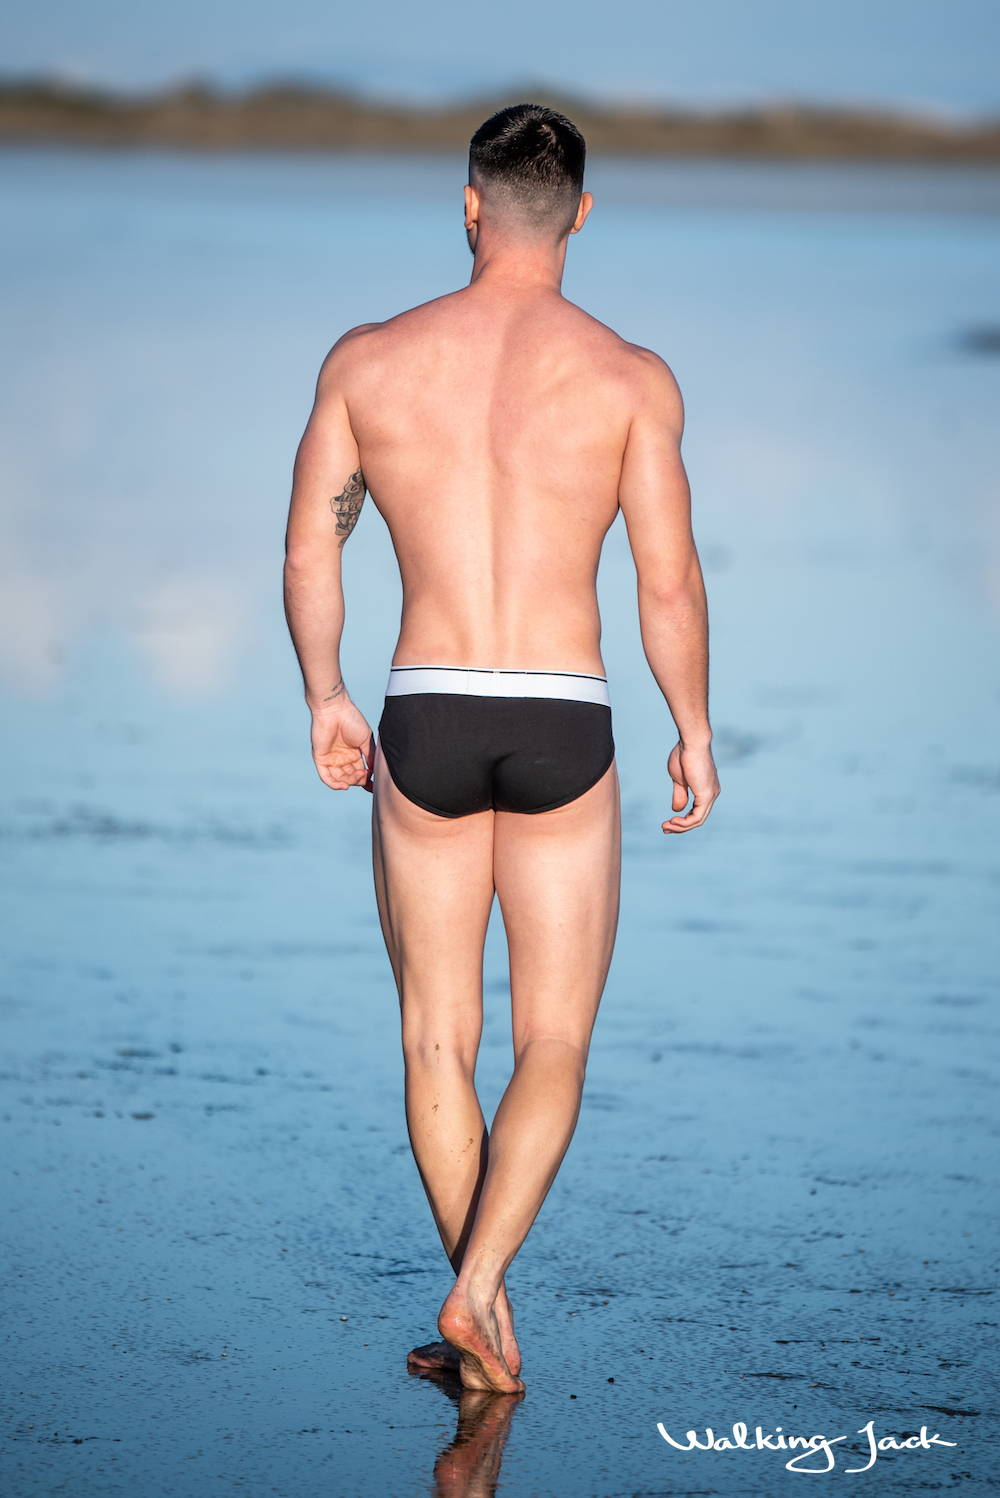 Walking Jack | Mens Core Brief  | It's About The Man | Mens briefs, male model in underwear, model Daniel Tsvetkov , shirtless men, man in pants